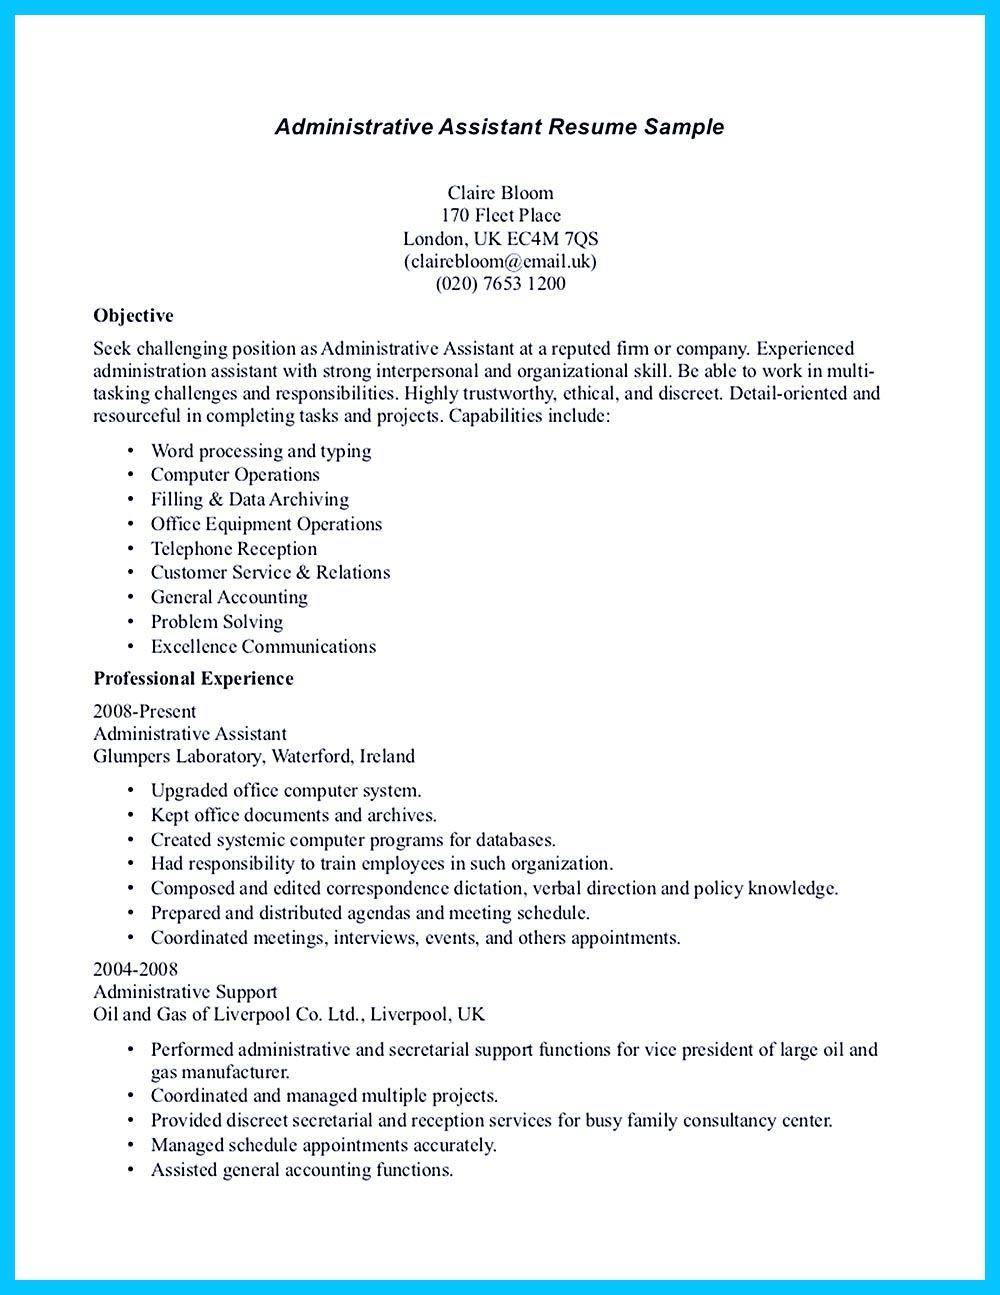 need assistant resume